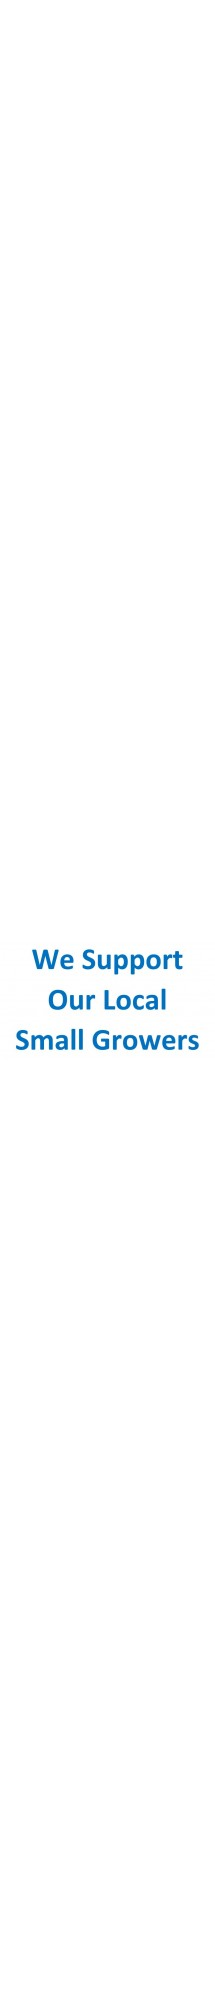 We Support Our Local Small Growers